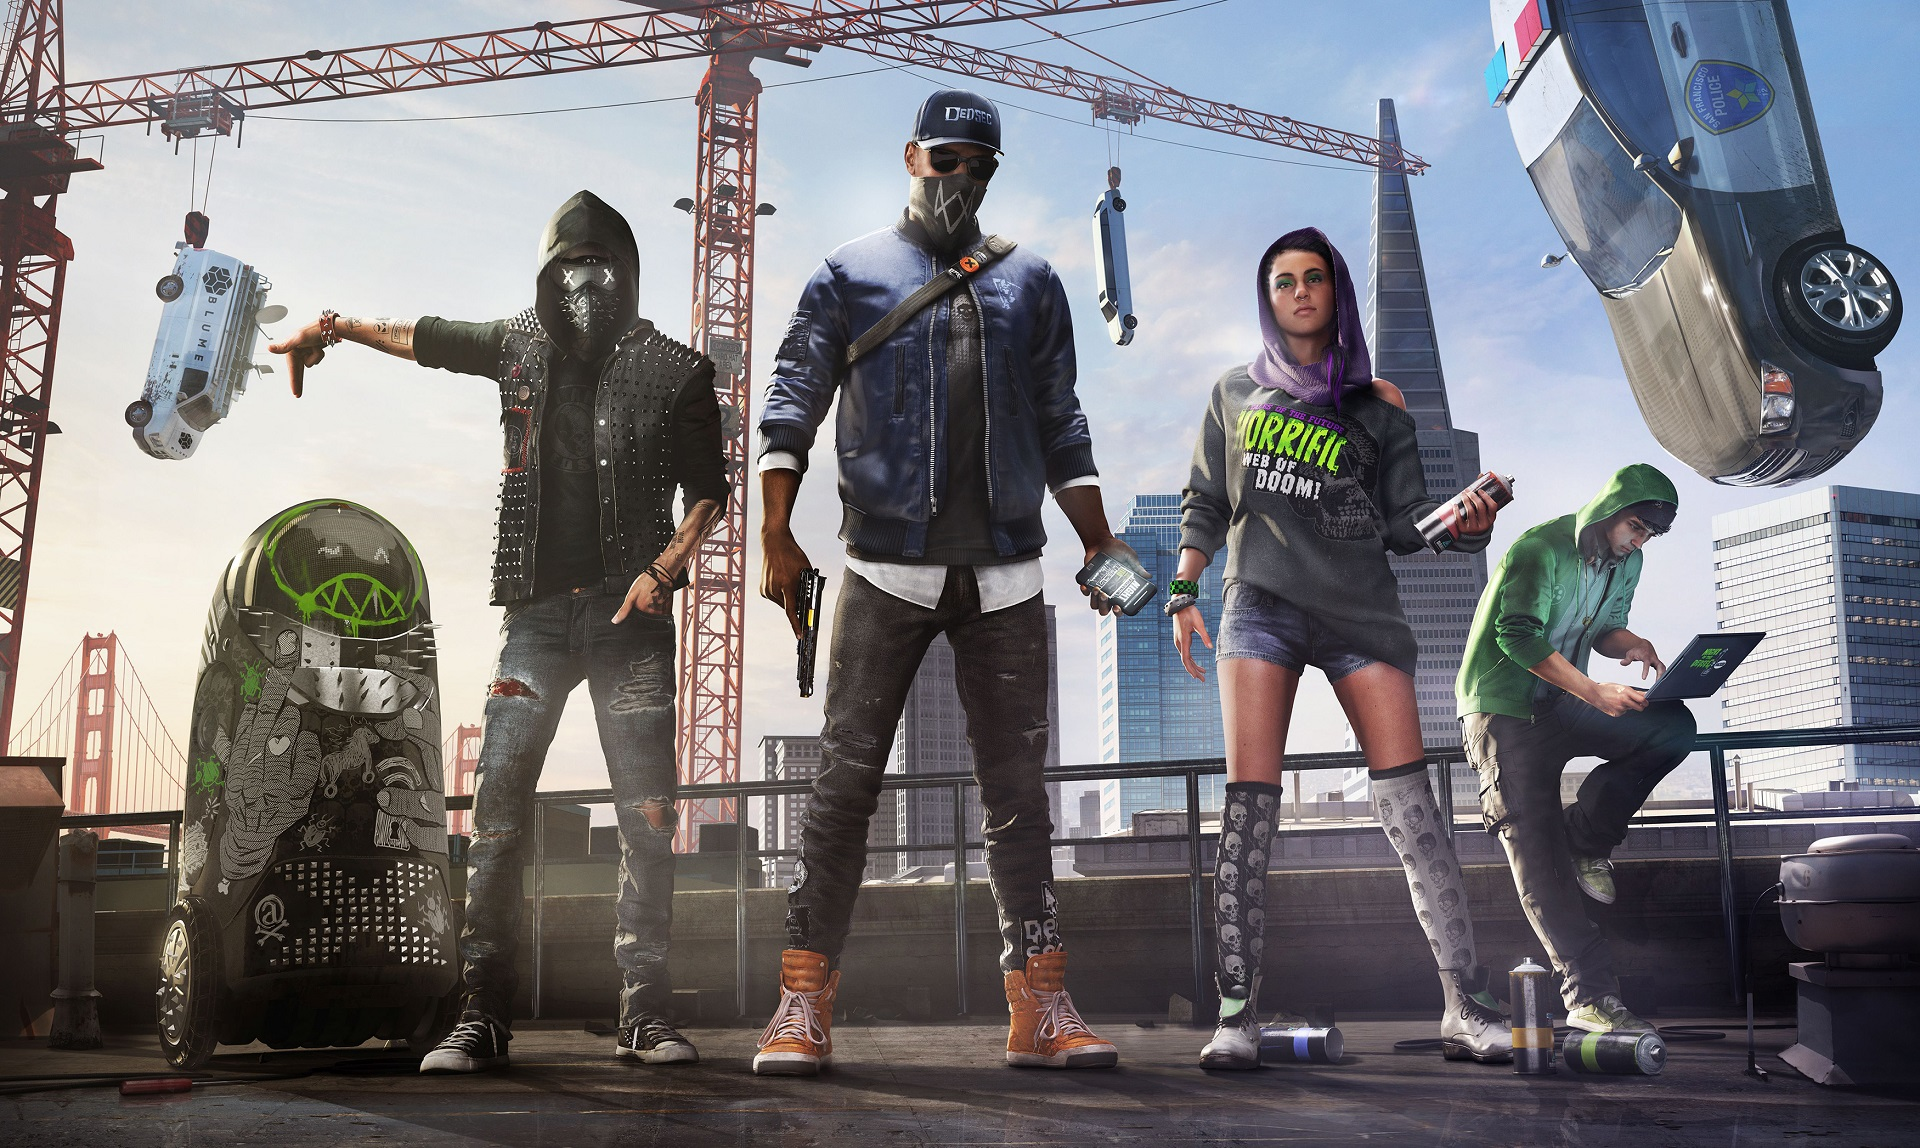 Watch Dogs 2 video introduces us to the members of DedSec